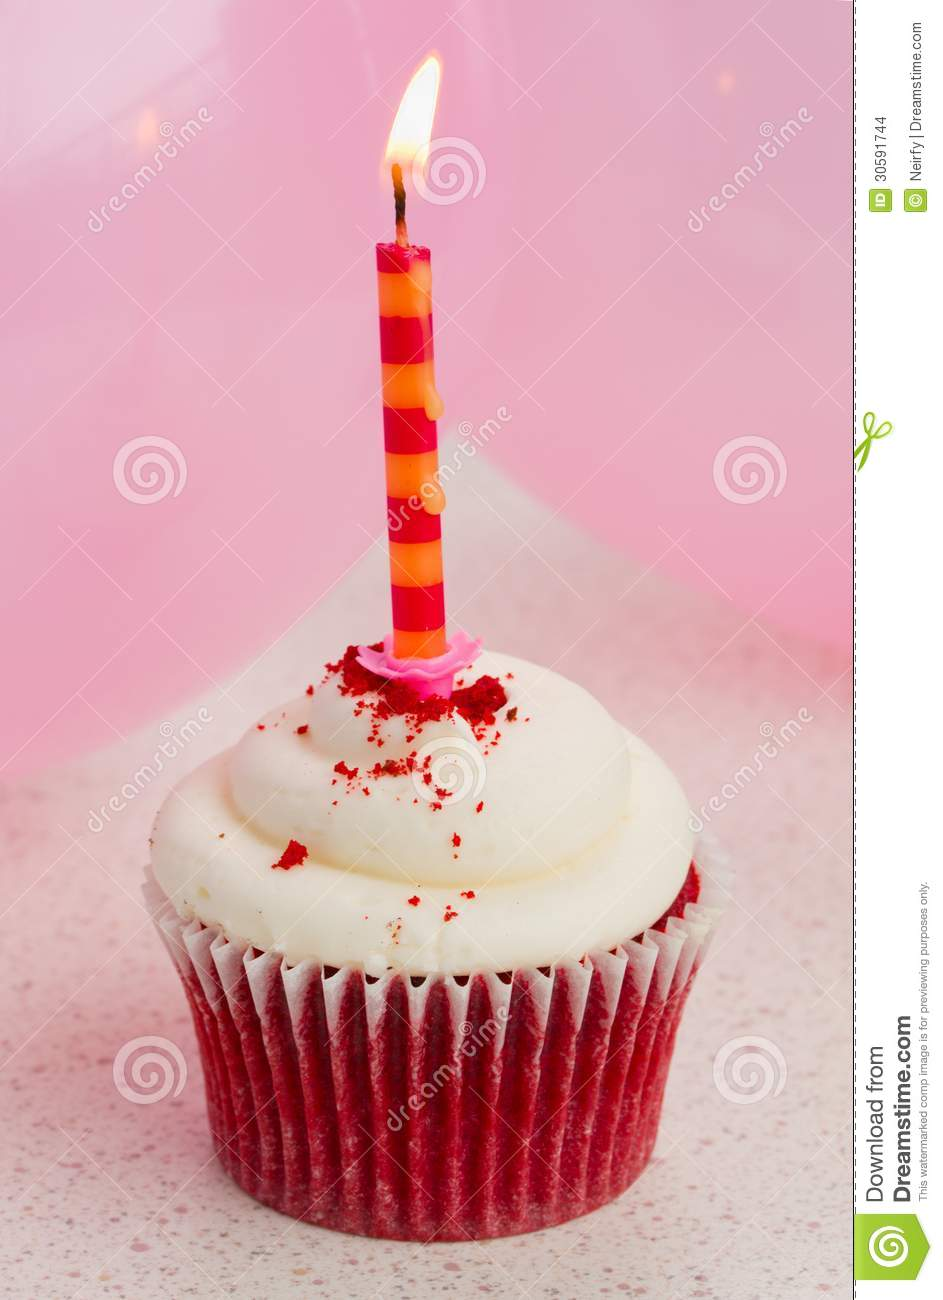 One Birthday Cake Stock Images - Image: 30591744